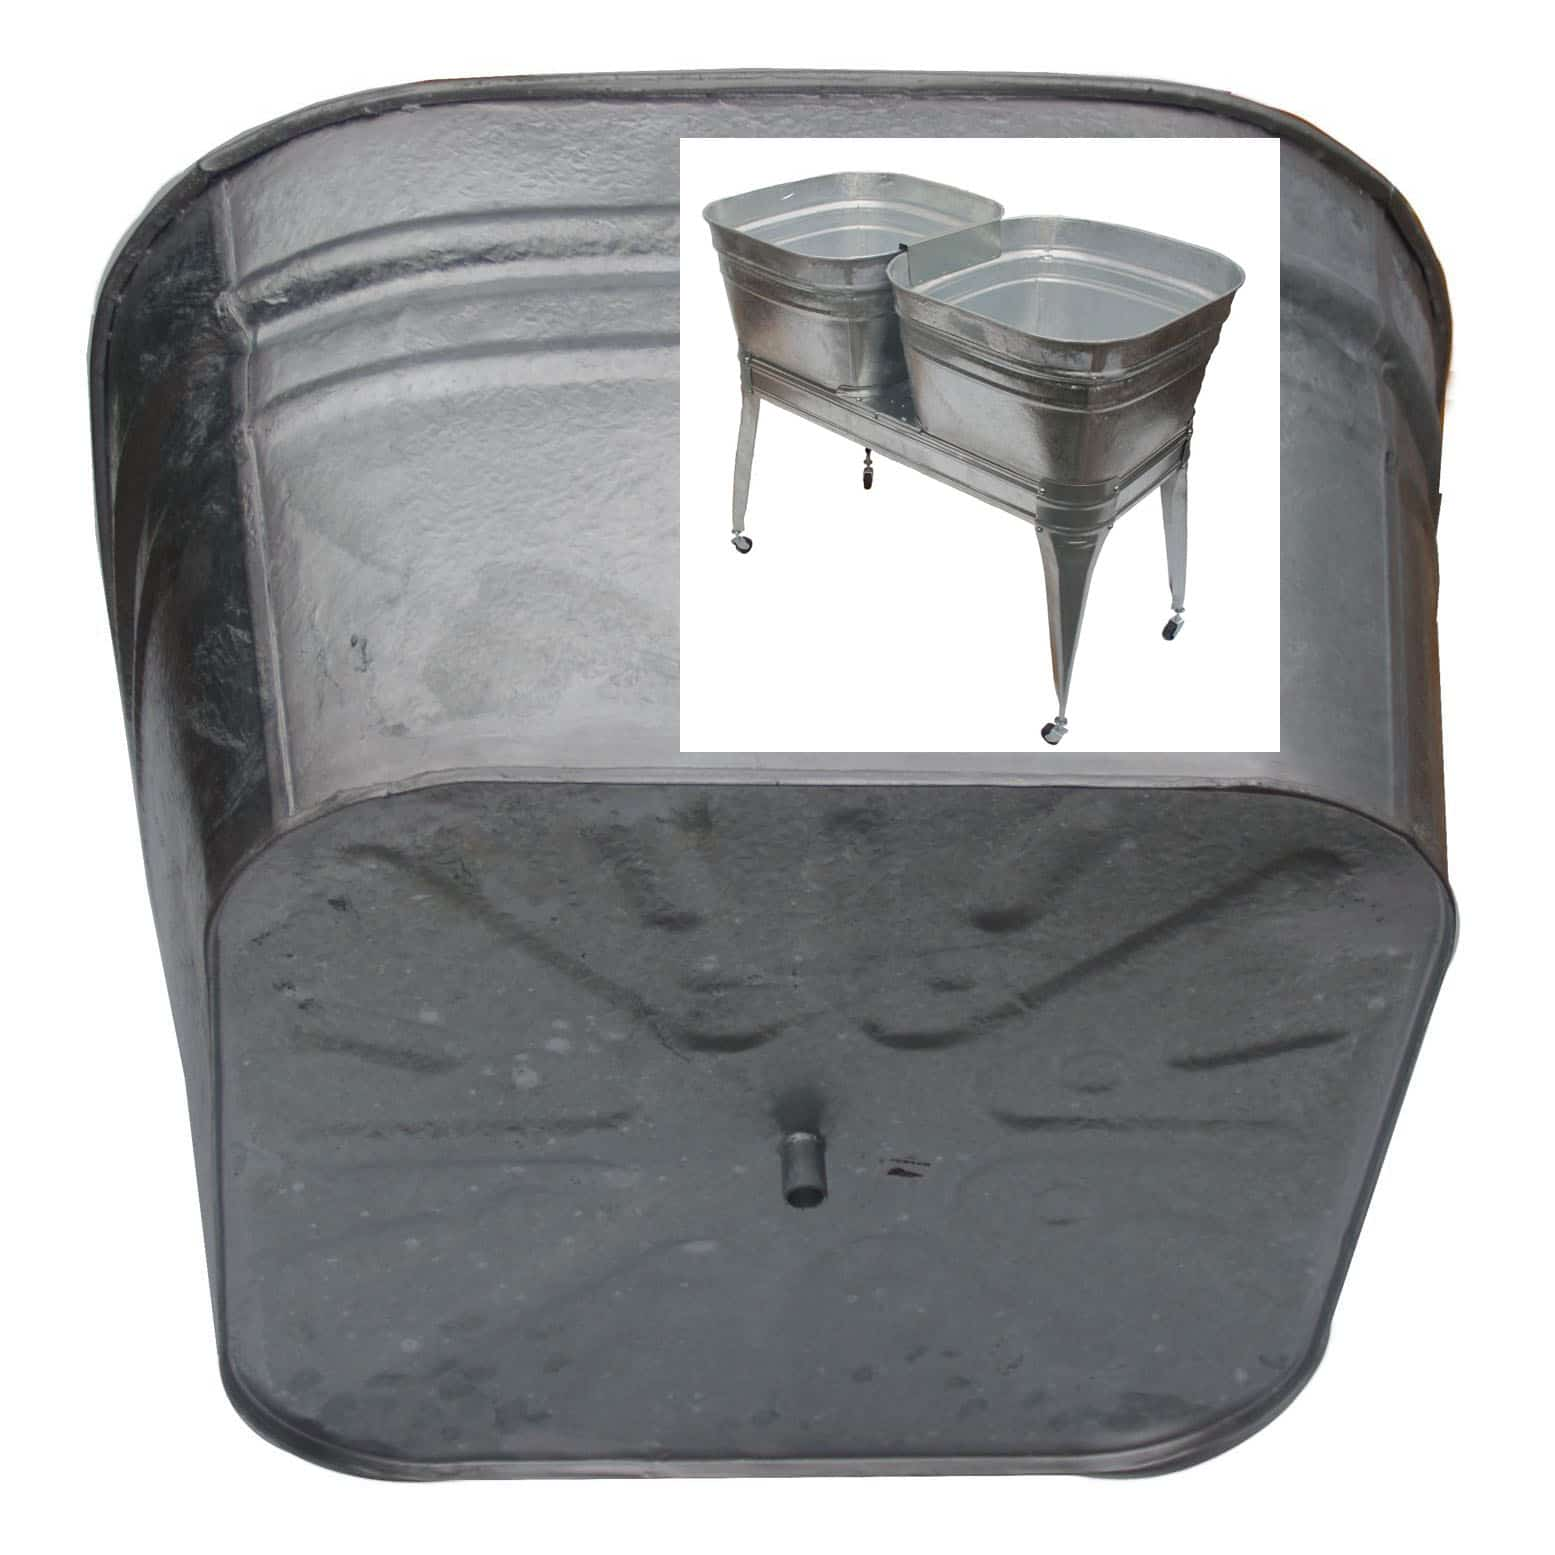 double galvanized laundry sink with stand